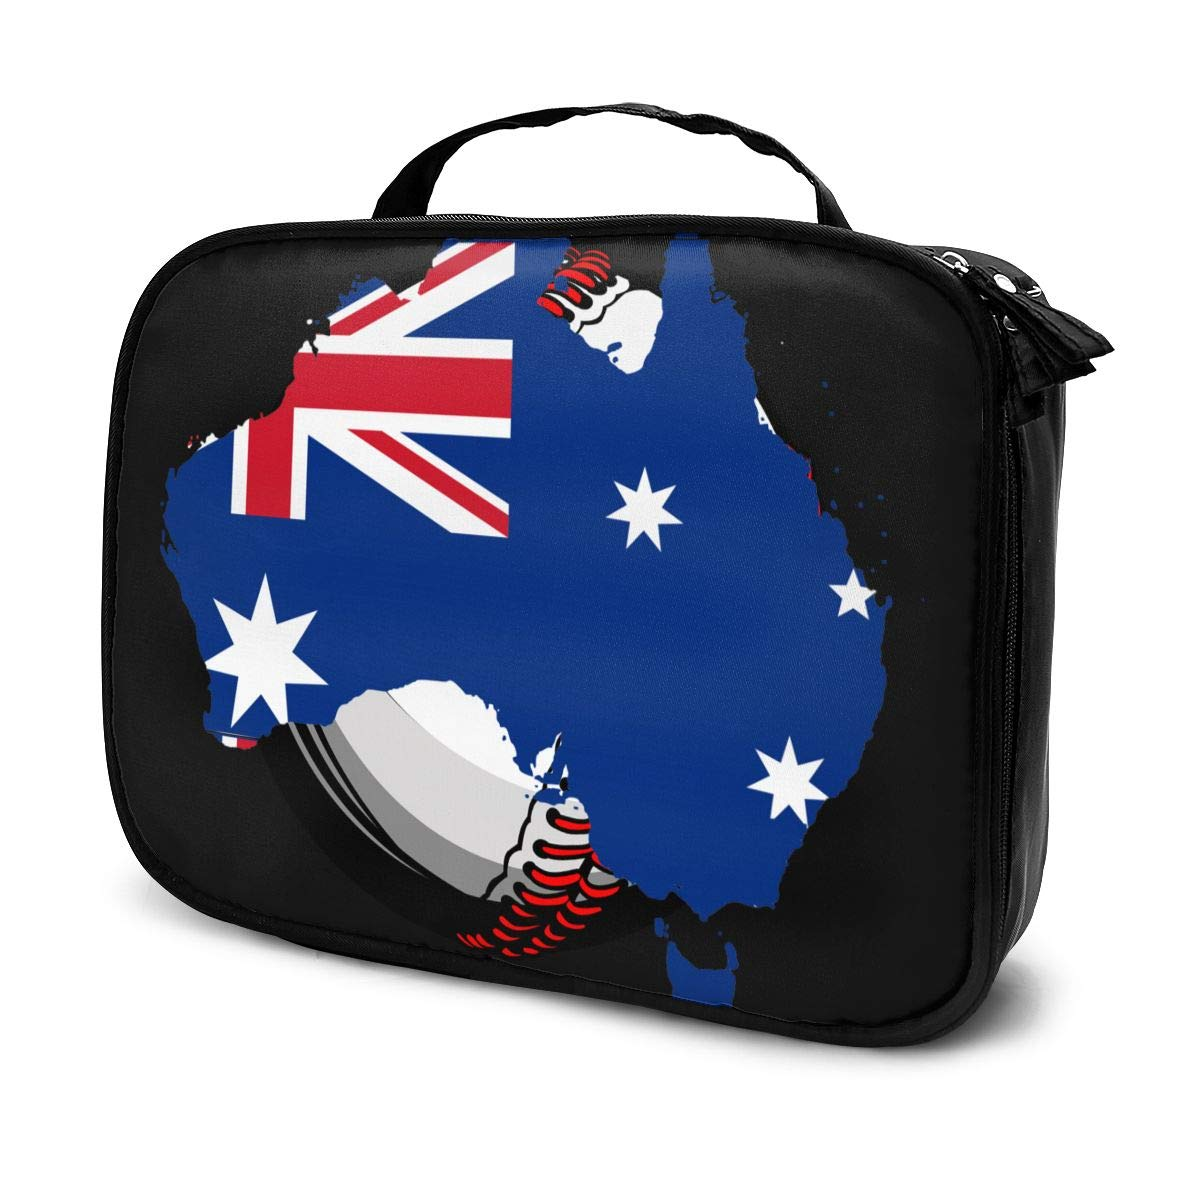 Fashion Makeup Cosmetic Case Clutch Bag, Flag Of Australia Cosmetic Train Case Organizer, Luggage Pouch, Multifunction Tote Bag Makeup Pouch For Women Girls